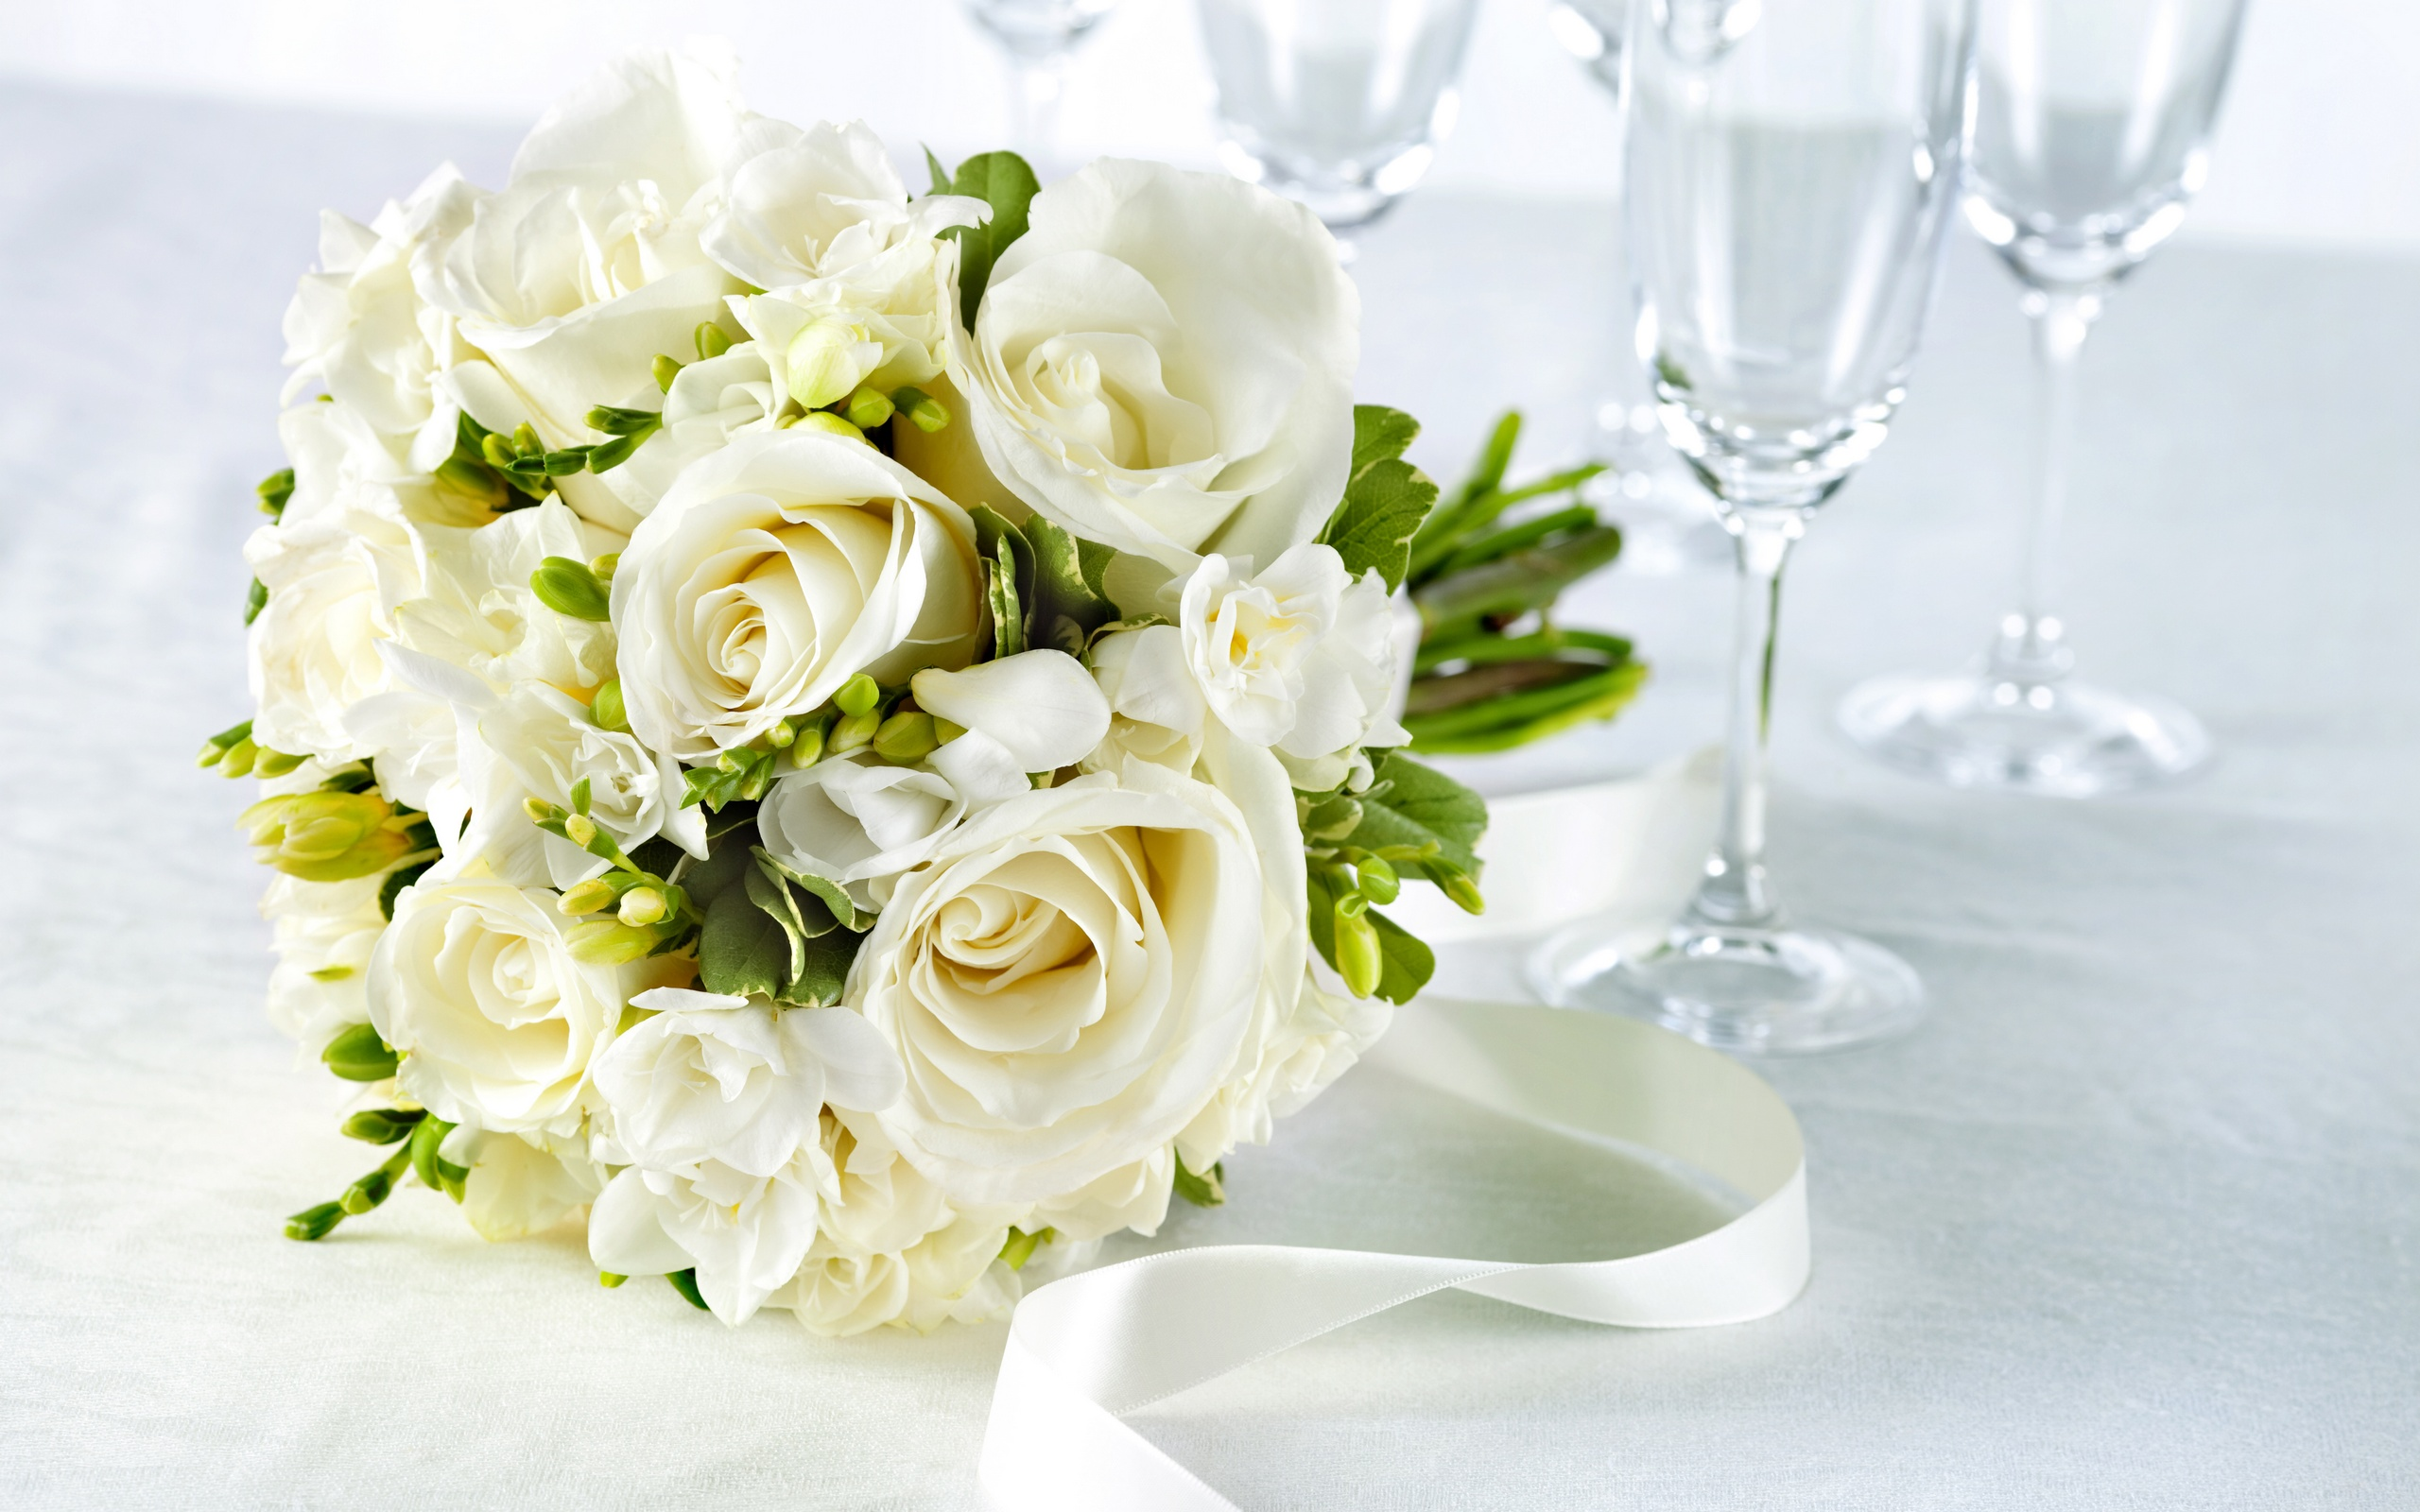 Roses Images Pure White HD Wallpaper And Background Photos